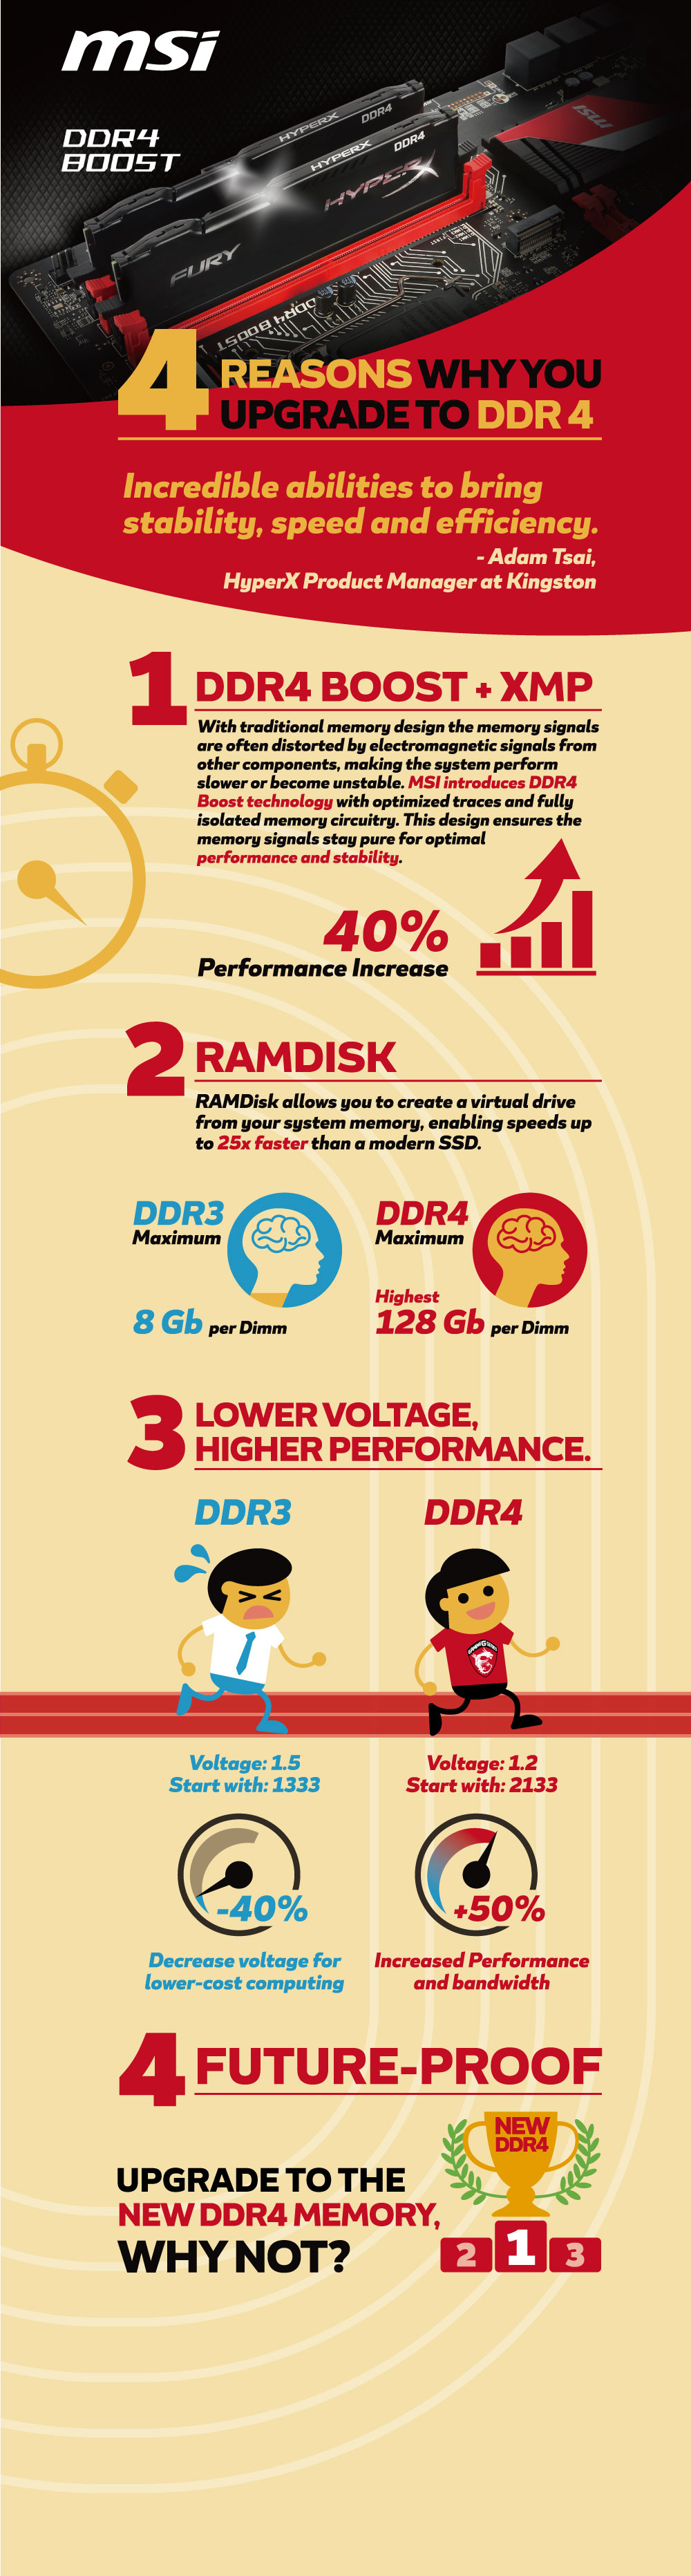 DDR4-Infographic_Final(o)_F